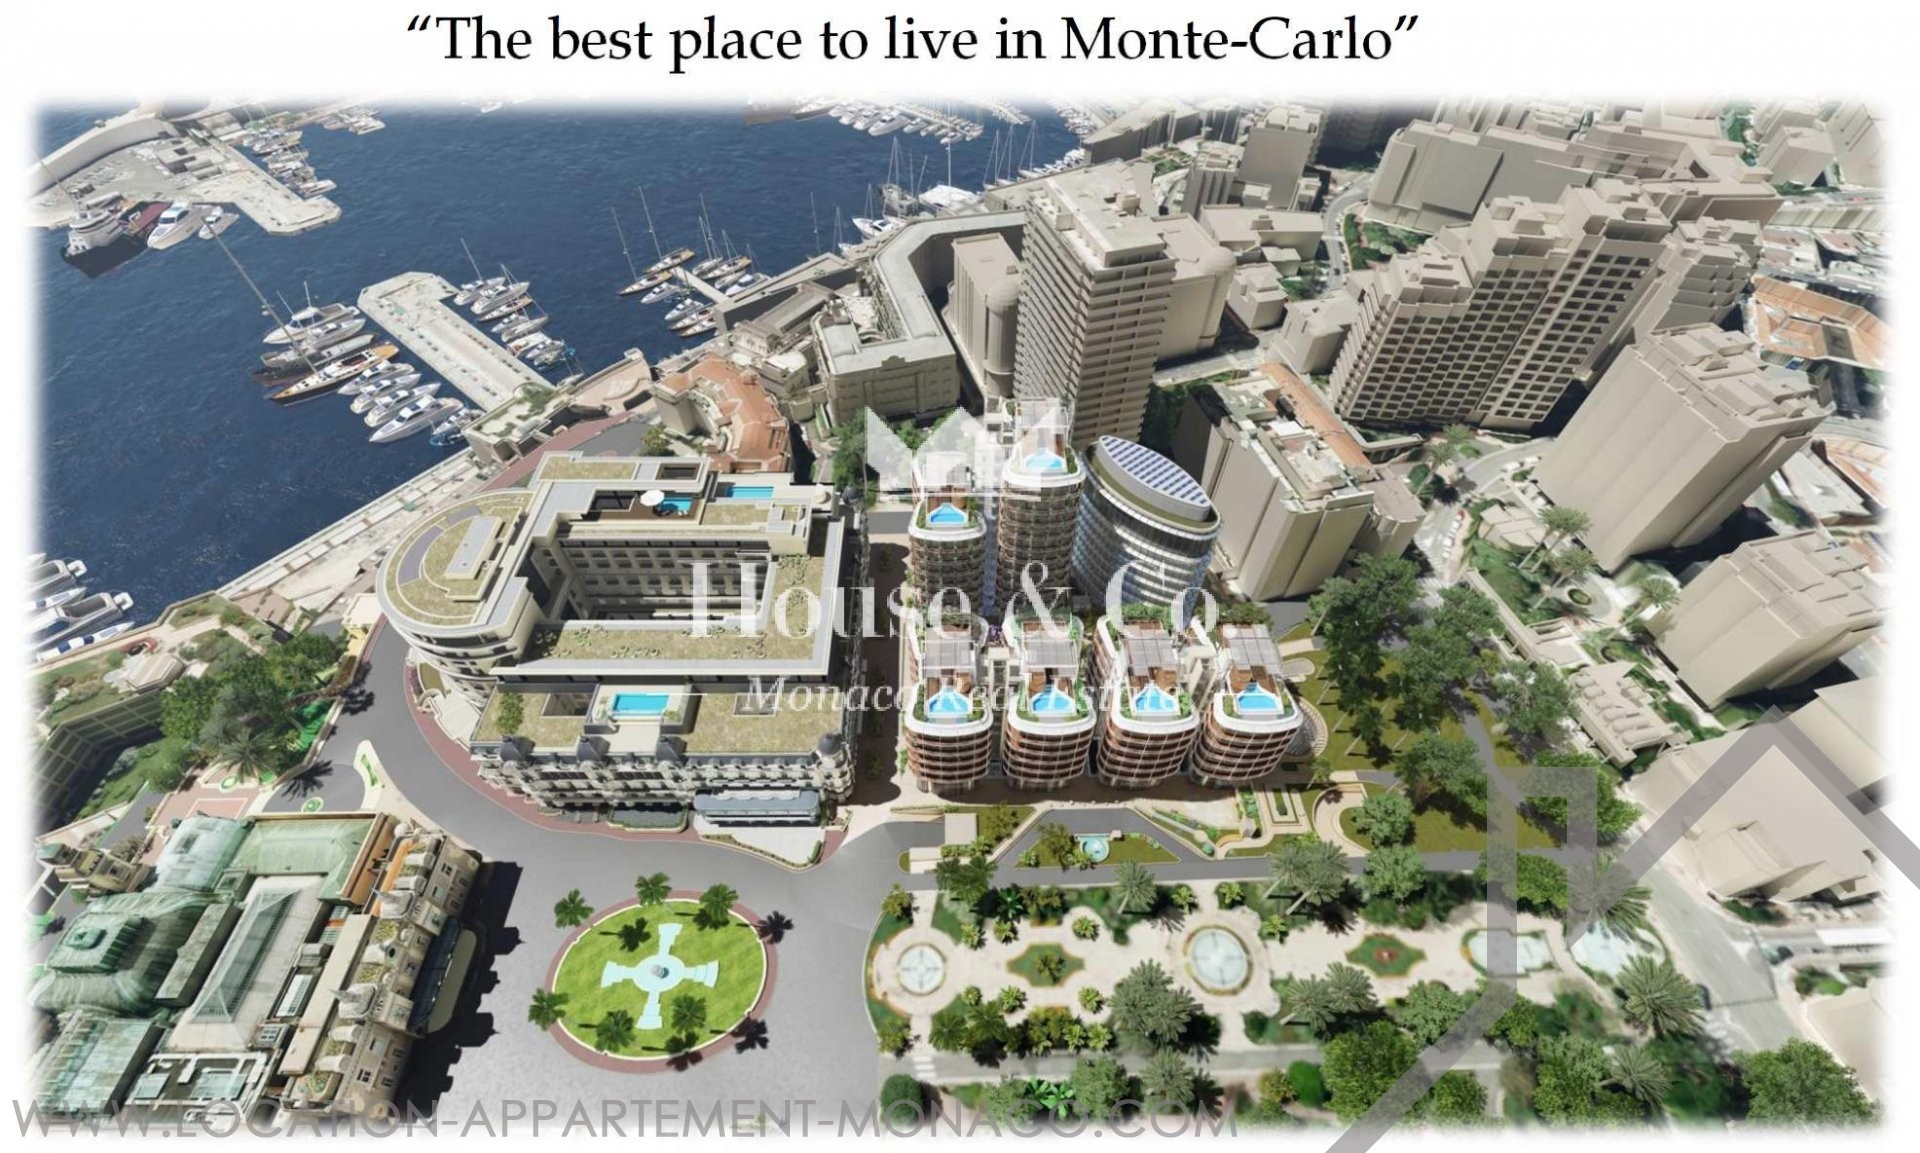 APARTMENTS IN HOTEL RESIDENCE FOR RENT - Apartments for rent in Monaco